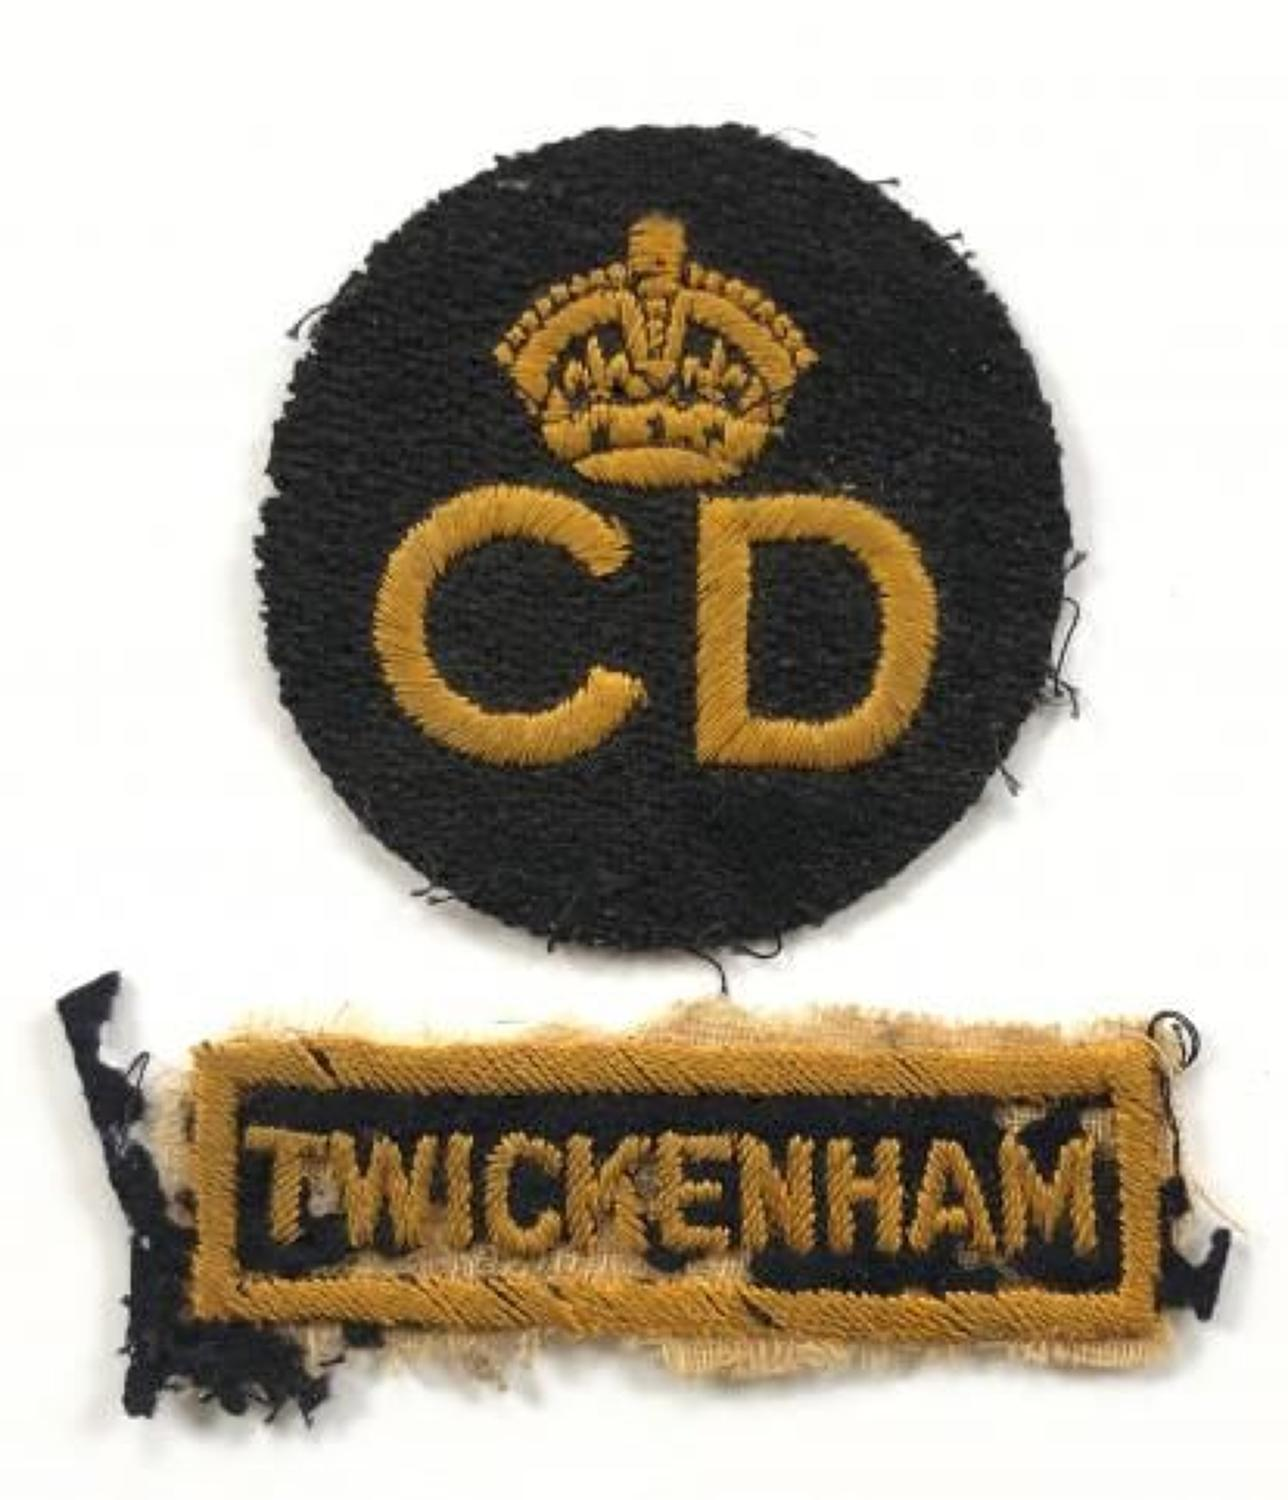 WW2 Civil Defence Twickenham Cloth Uniform Badges.